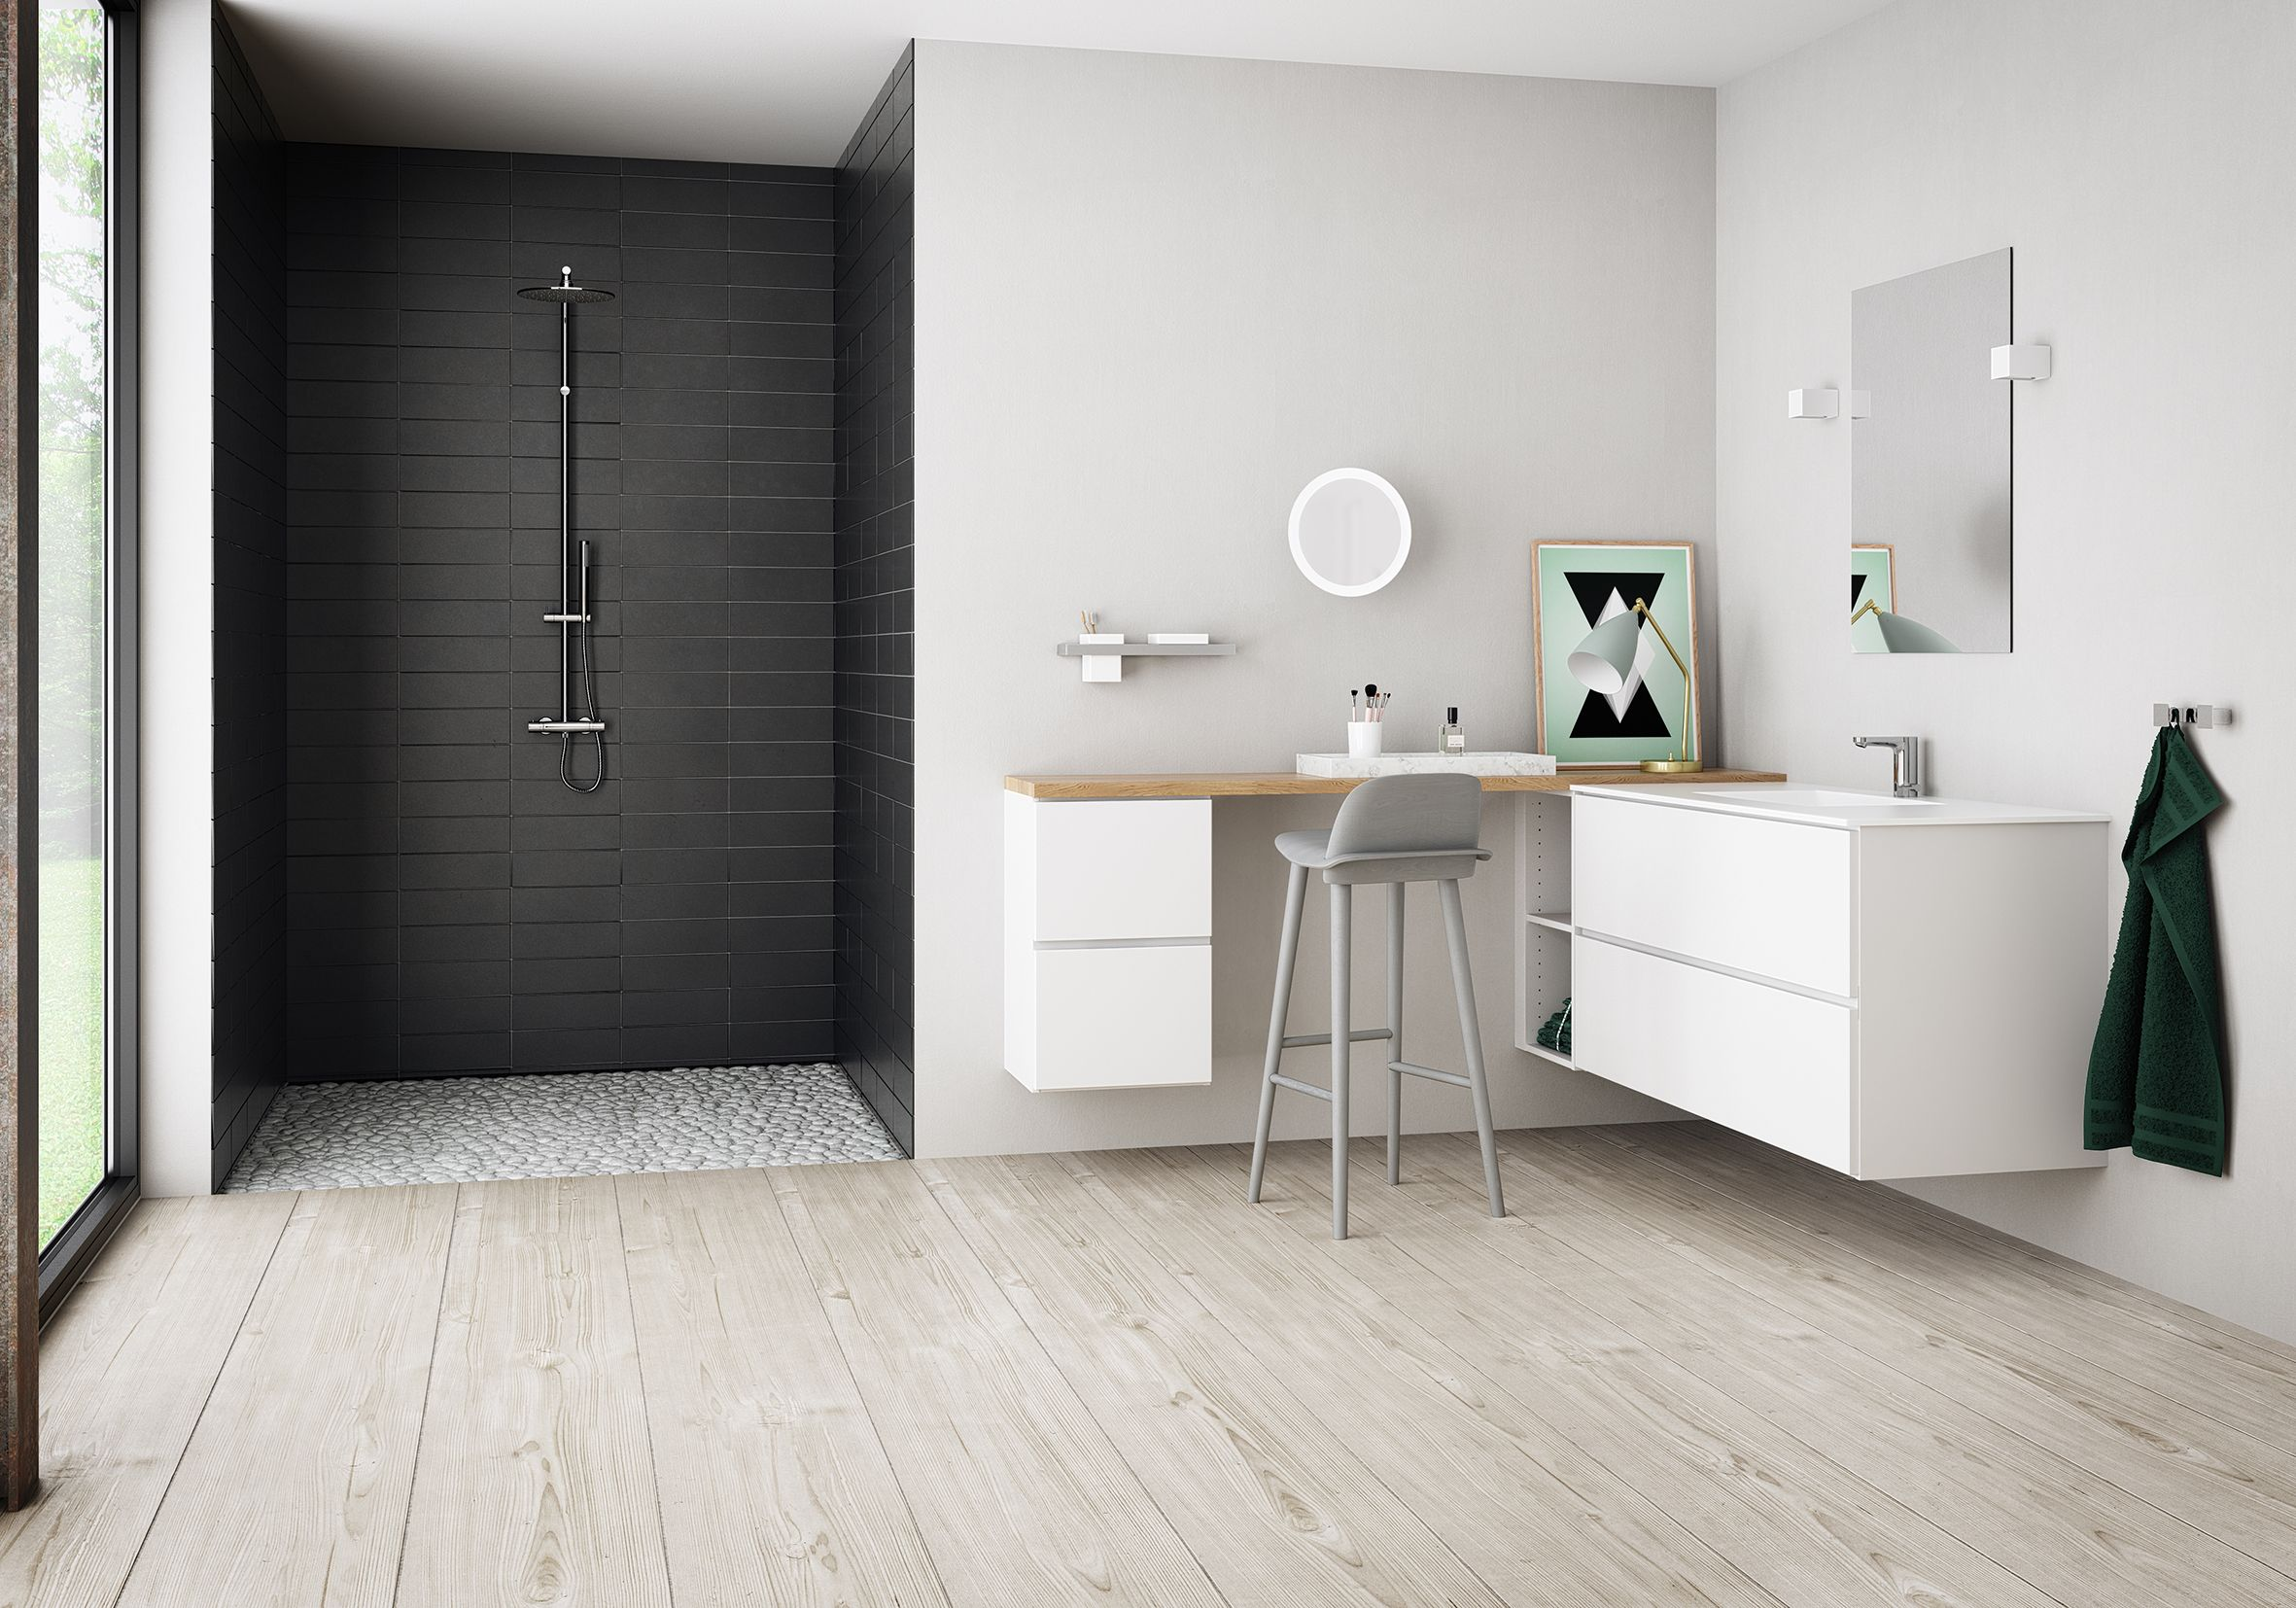 Mano by kvik simple clean lines with white doors without handles